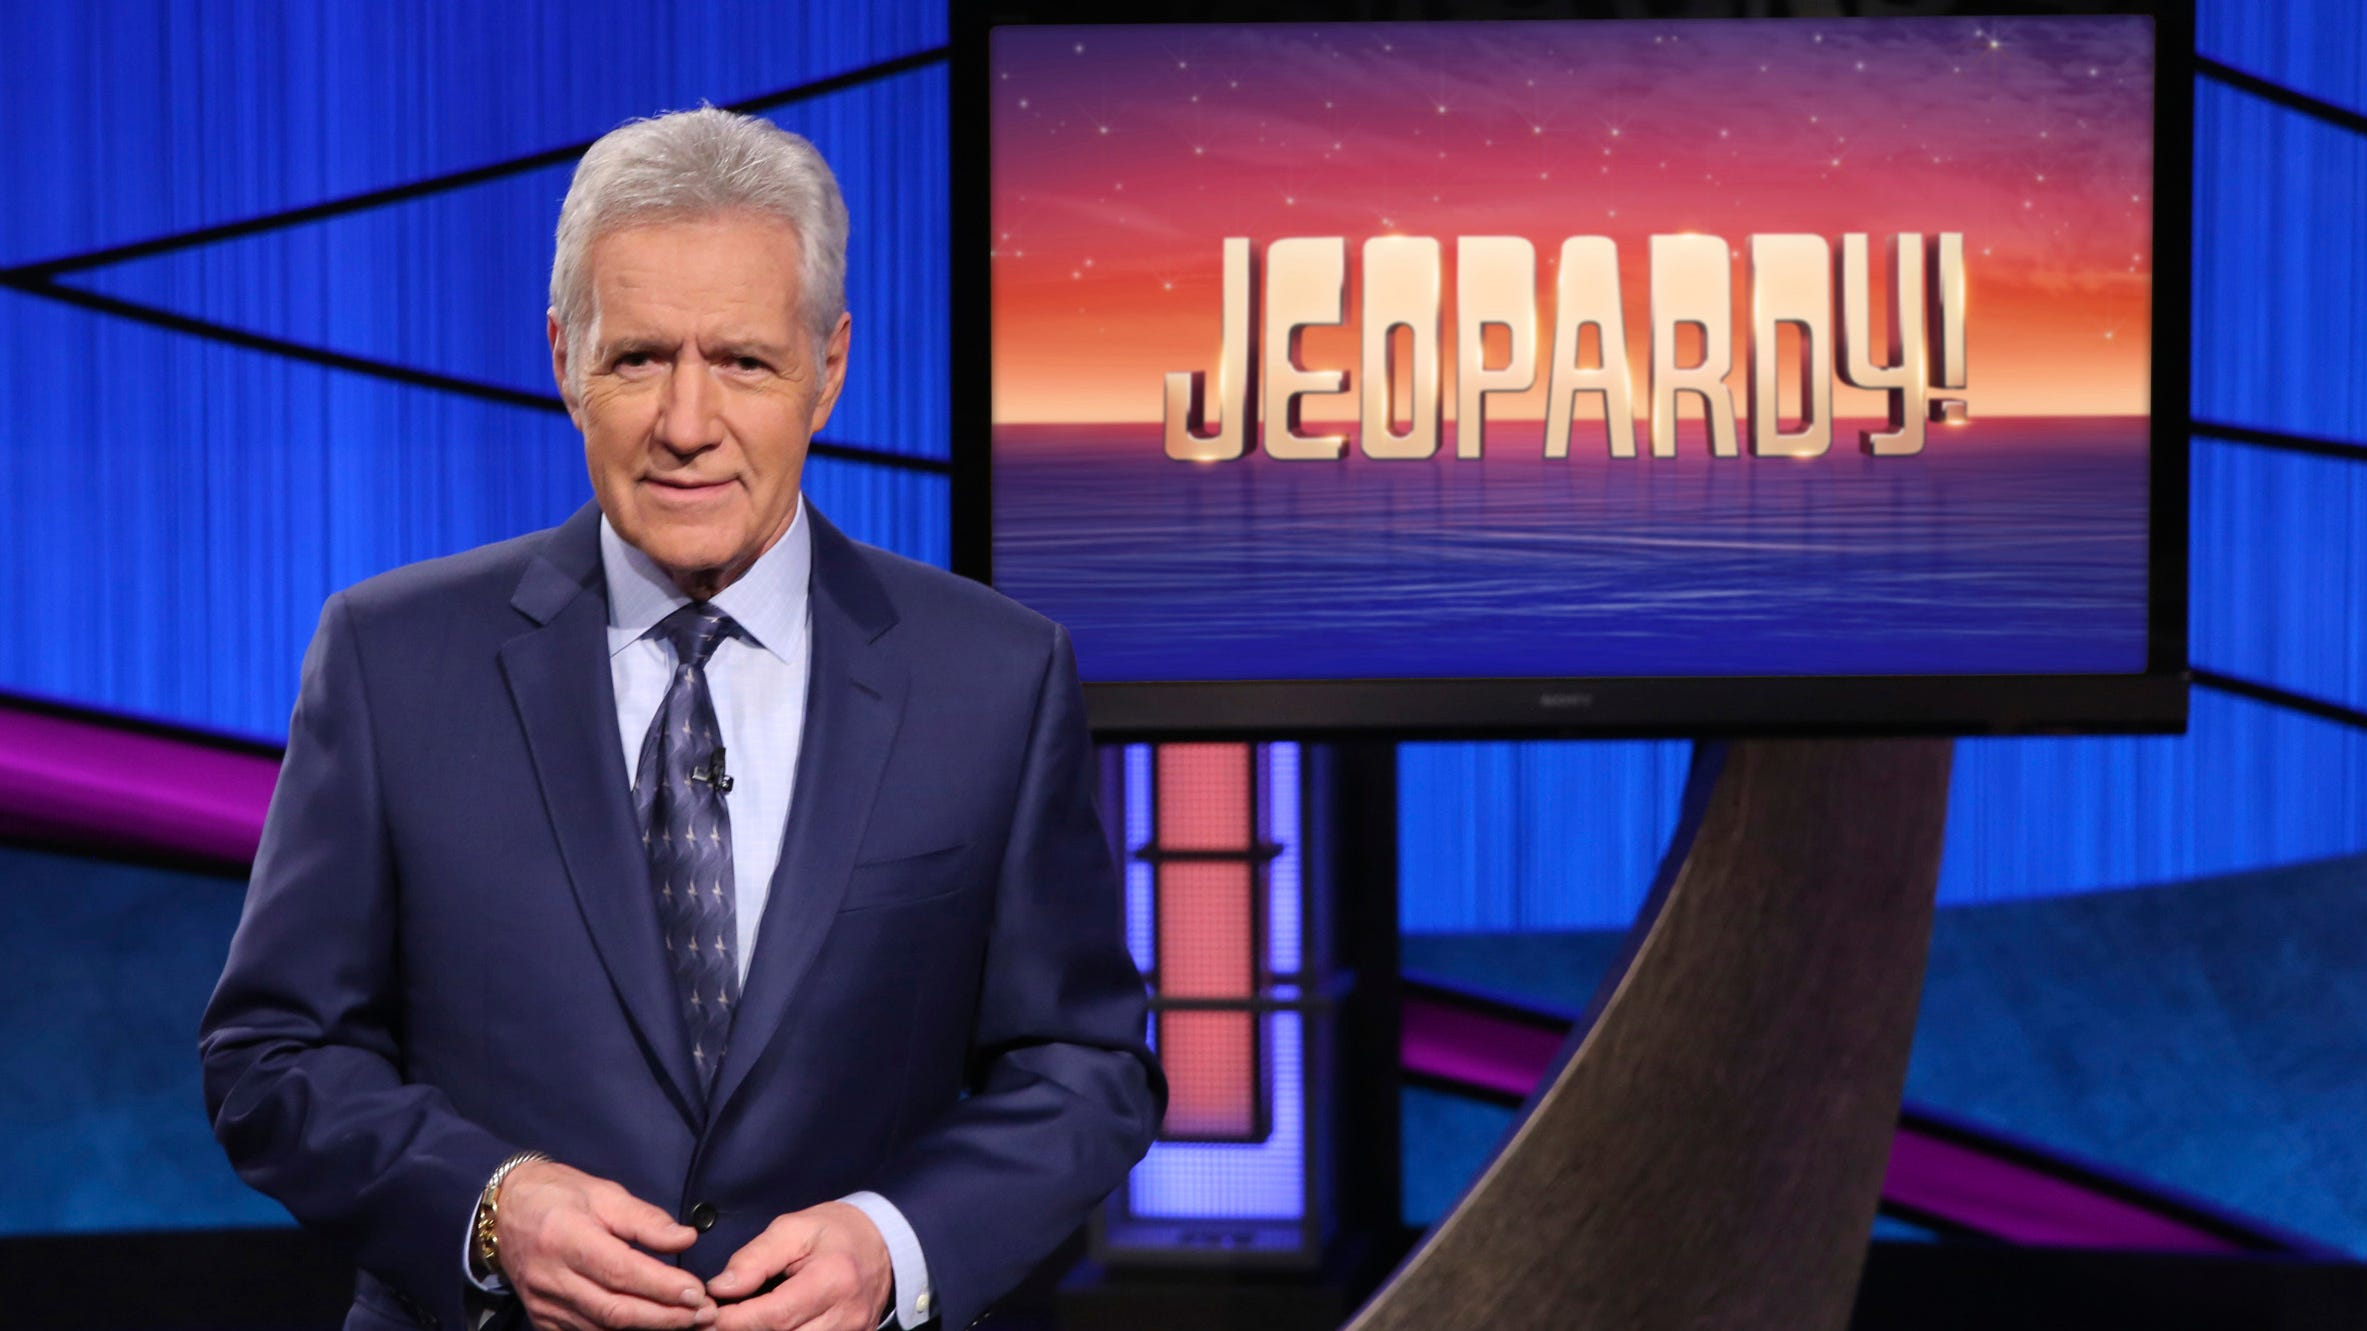 Alex Trebek dies: Ken Jennings, James Holzhauer, more pay tribute